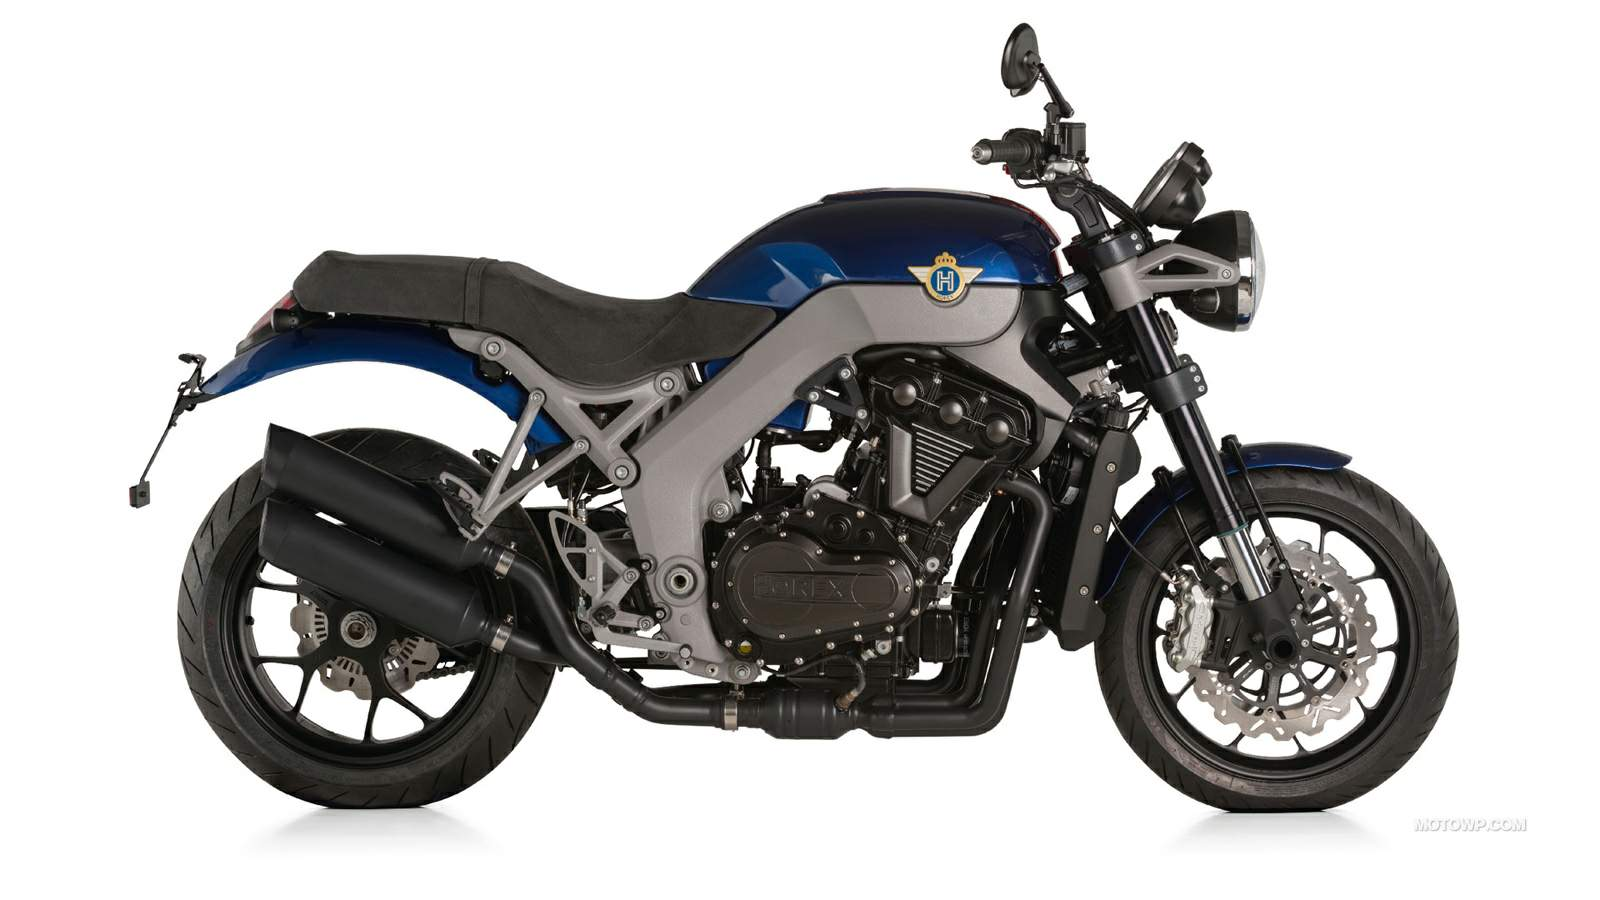 Horex VR6 Roadster technical specifications